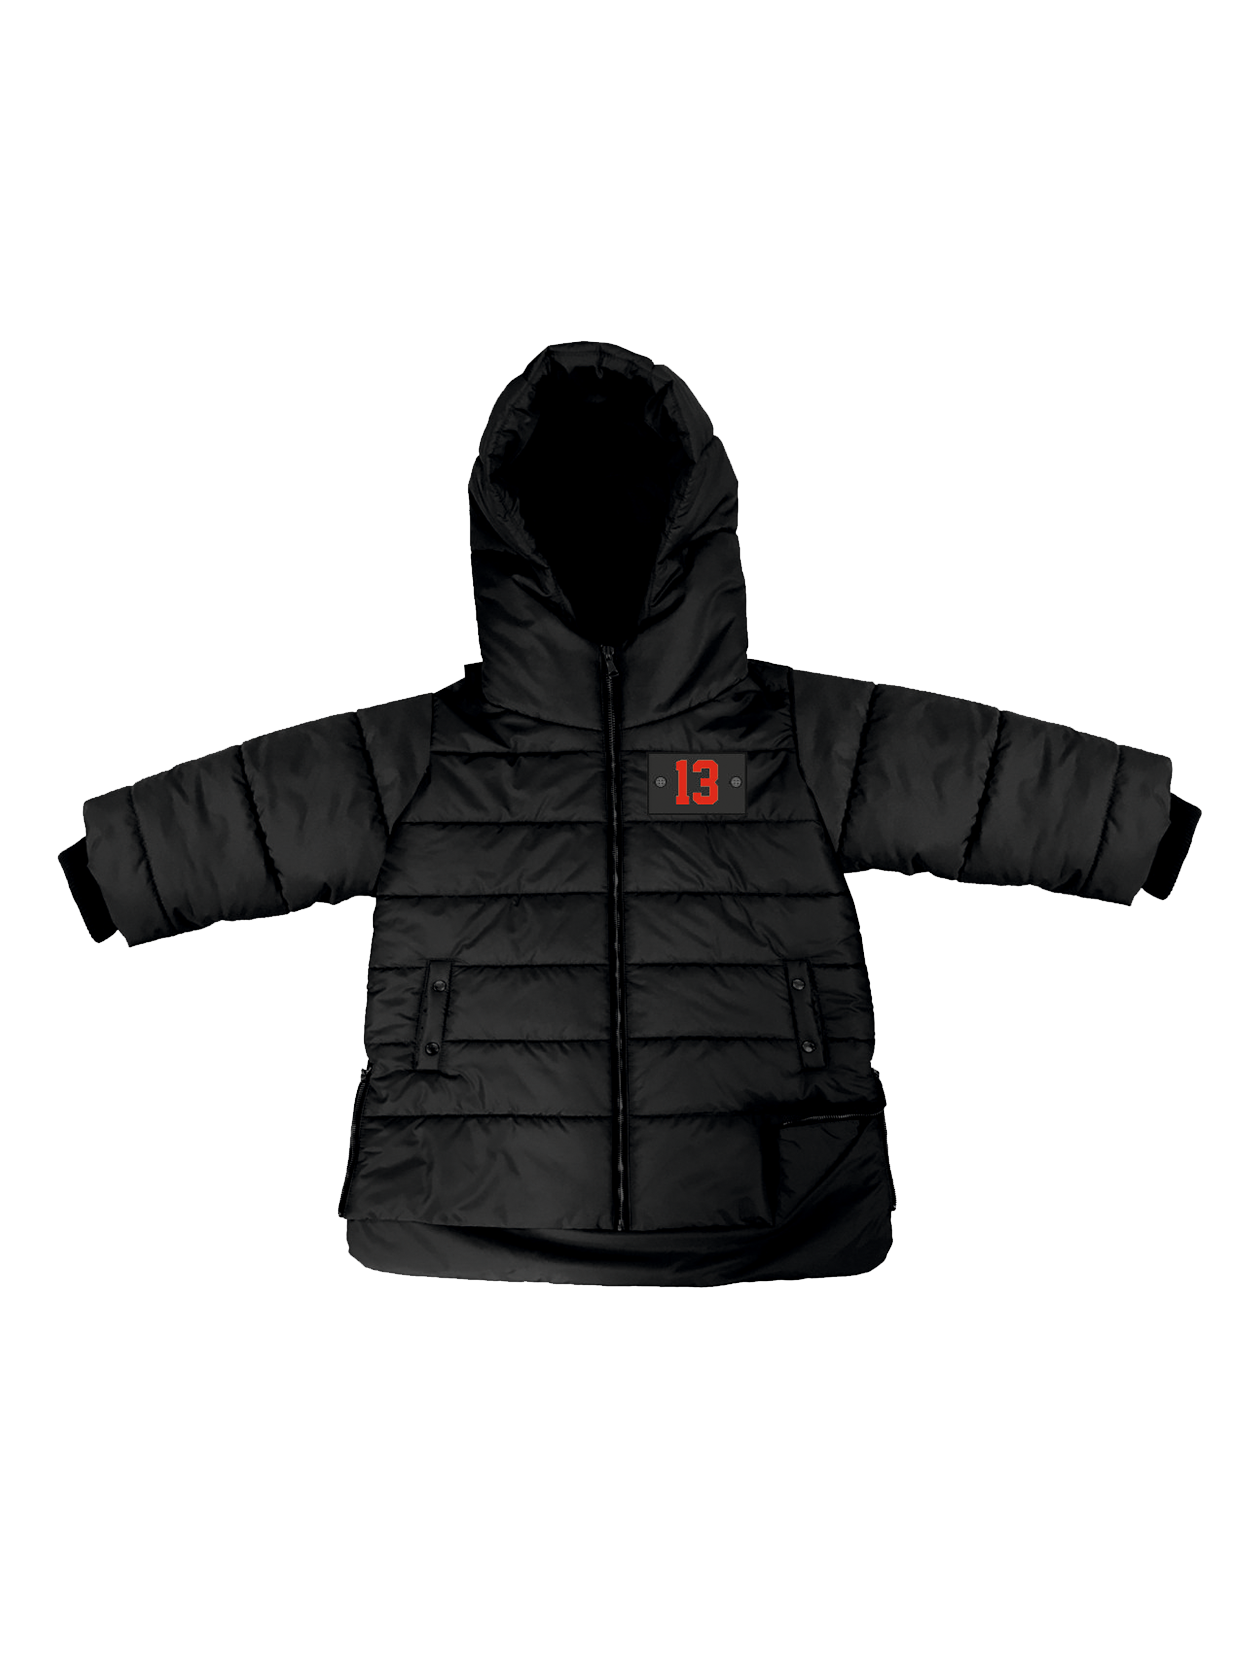 Kids down jacket Black HorizonKids jacket by Black Star Wear. Hooded design, midweight padded fabric for extra warmth, zip fastening, functional side pockets. Regular fit - true to size. Patch  with red 13 on the left side for the black jacket and Black Star patch for khaki. Long line with assimetrical cut. Elastic cuffs, small side zips. 100% polyester.<br><br>size: 7-8 years<br>color: Black<br>gender: unisex